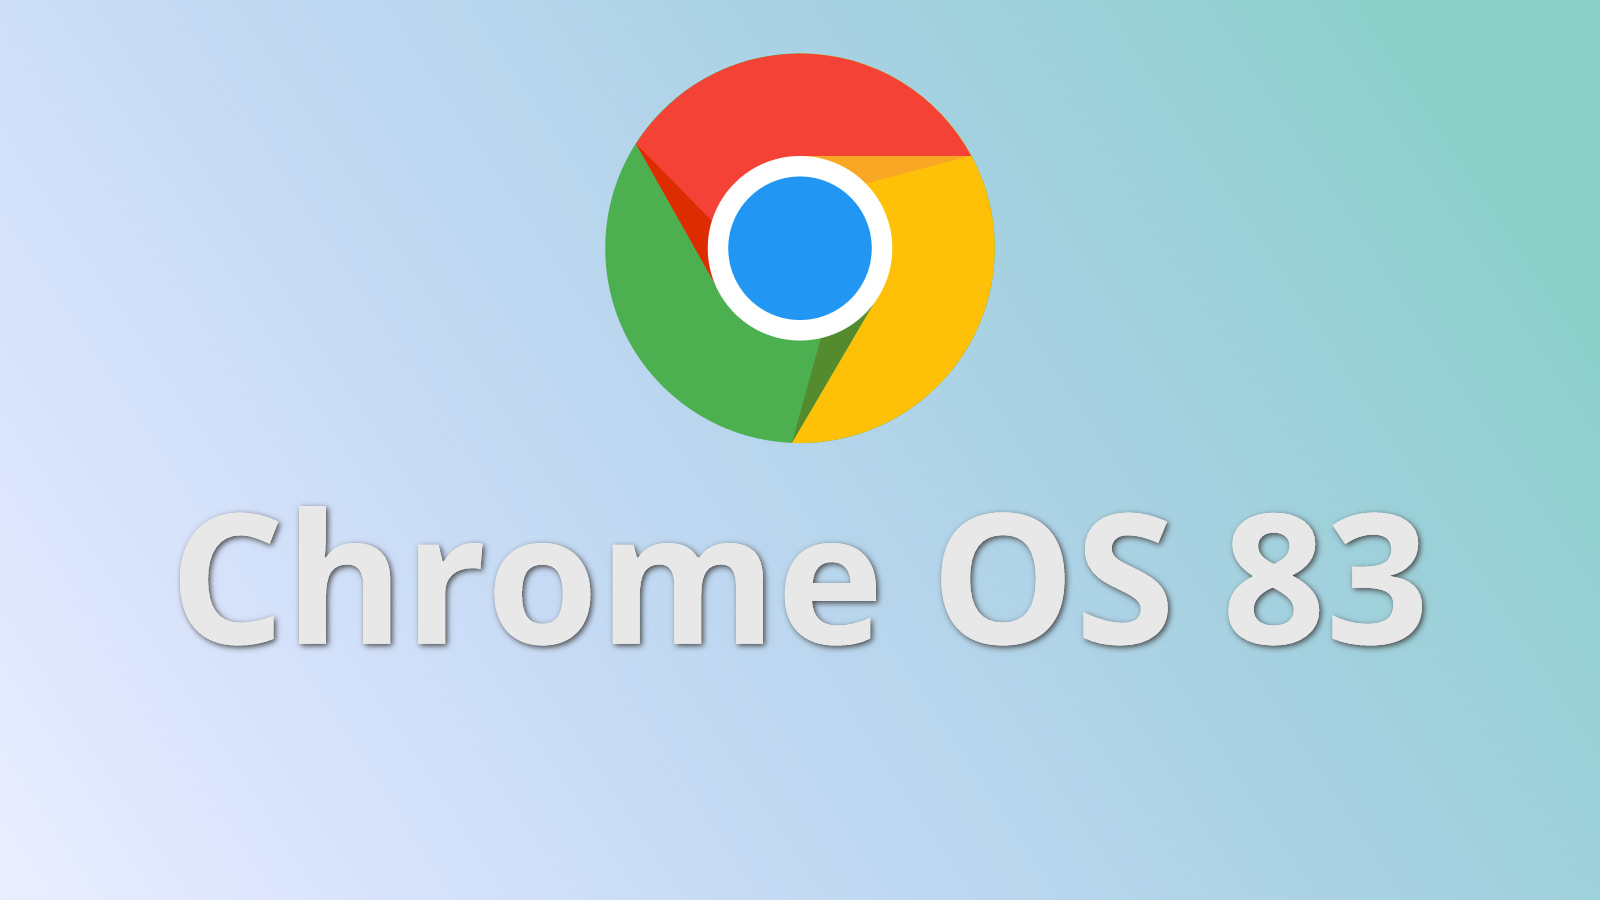 [Update] Chrome OS 83 has arrived and it's chock-full of updates